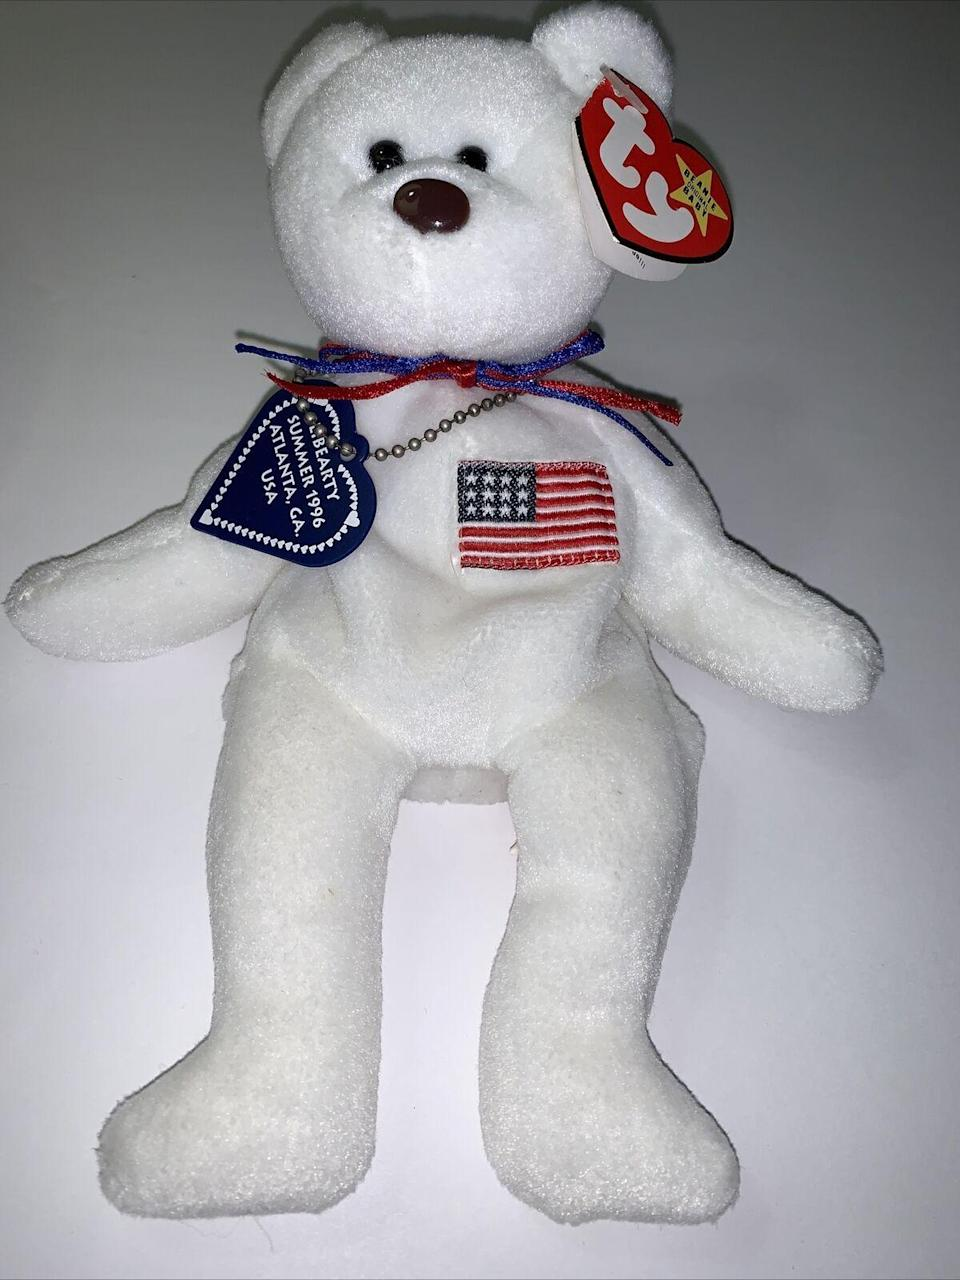 """<p><strong>Ty Beanie Babies</strong></p><p>ebay.com</p><p><strong>$75000.00</strong></p><p><a href=""""https://go.redirectingat.com?id=74968X1596630&url=https%3A%2F%2Fwww.ebay.com%2Fitm%2F303840727655&sref=https%3A%2F%2Fwww.cosmopolitan.com%2Flifestyle%2Fg24162108%2Fmost-expensive-valuable-beanie-babies-collectible%2F"""" rel=""""nofollow noopener"""" target=""""_blank"""" data-ylk=""""slk:Shop Now"""" class=""""link rapid-noclick-resp"""">Shop Now</a></p><p>If I had that much money laying around somewhere, I'd probably shell it out too for this little one for that name alone.</p>"""